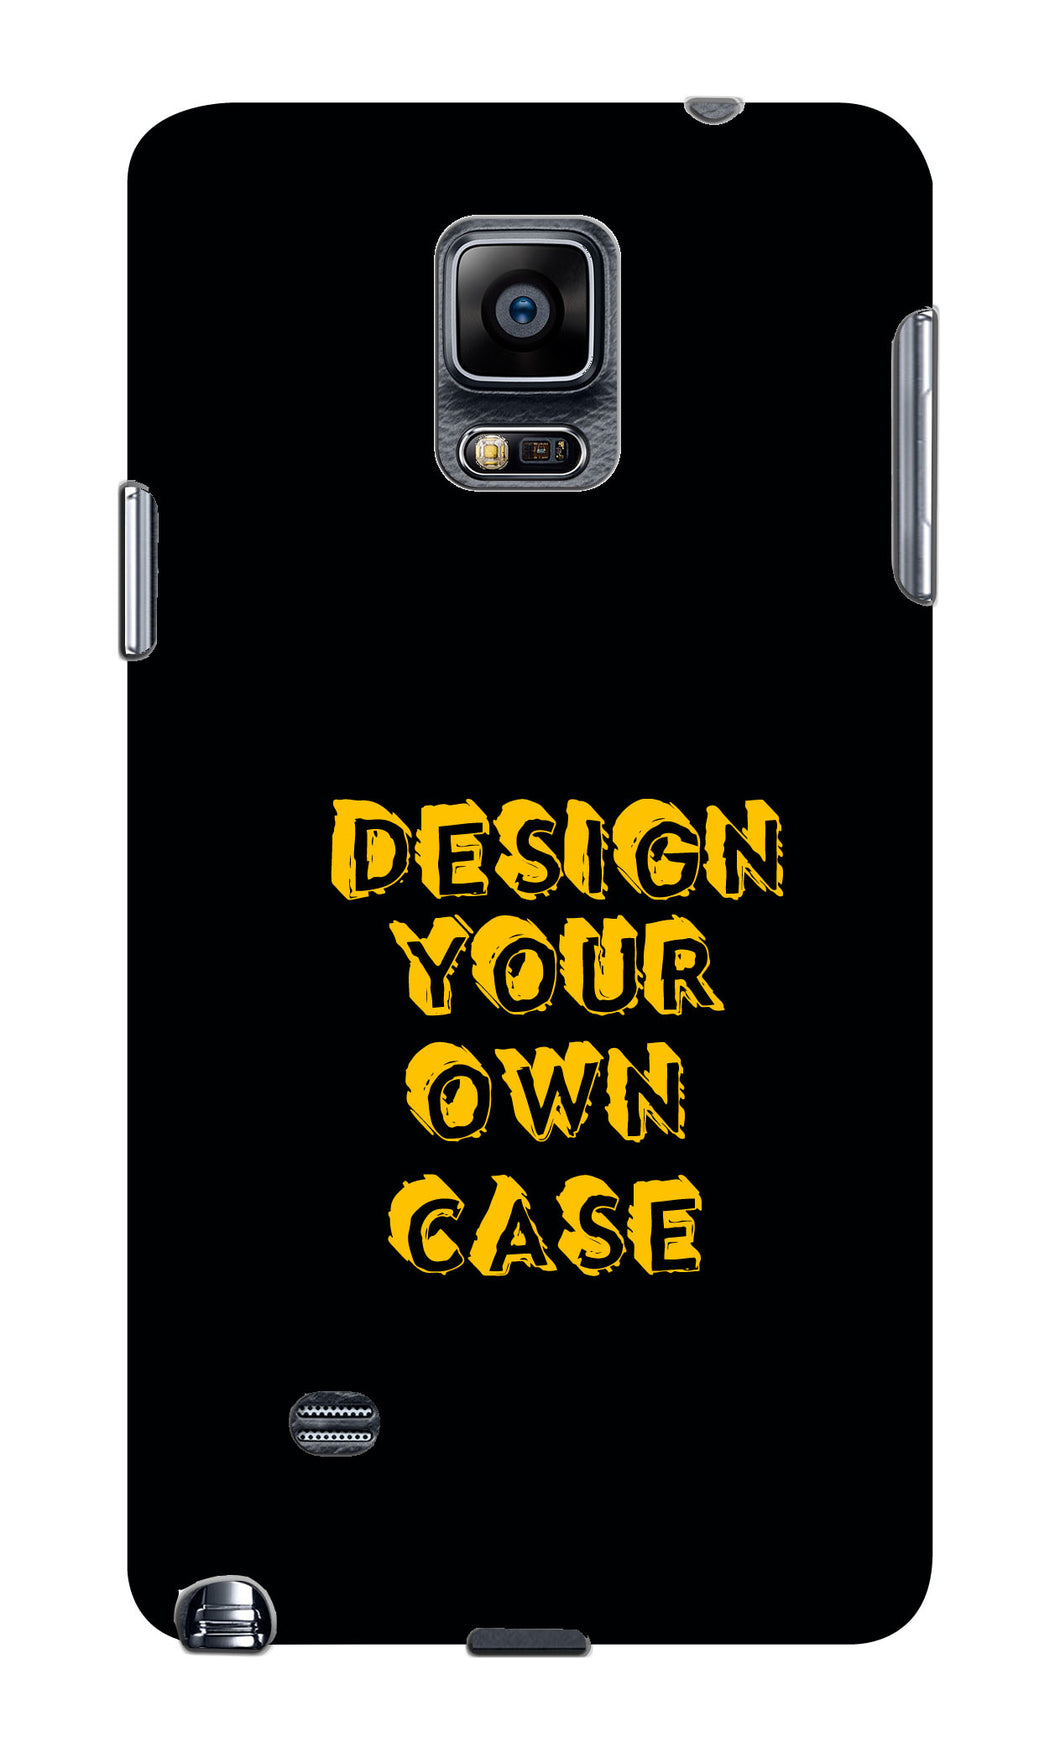 Design Your Own Case for Samsung Galaxy note 4